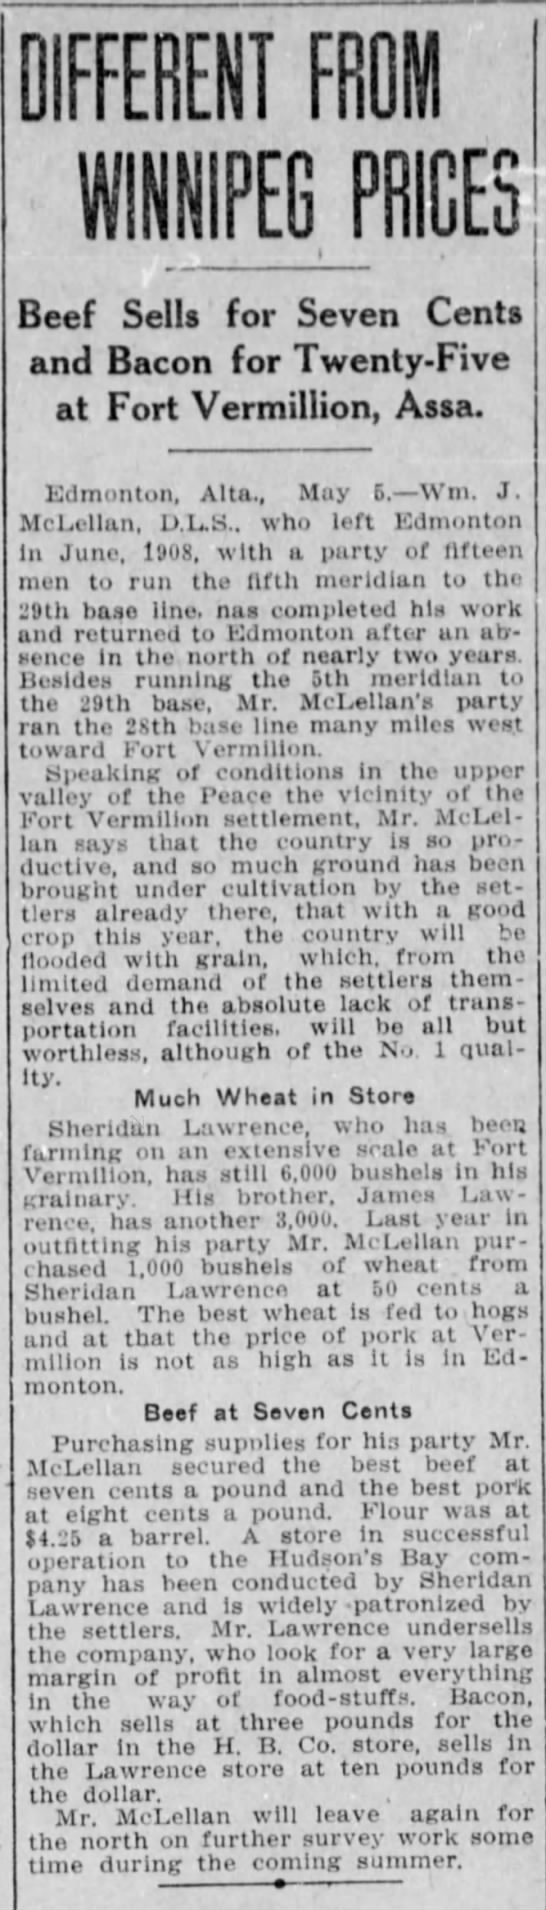 Winnipeg Tribune 1910.05.05 Sheridan Lawrence wheat - DIFFERENT F m WINNIPEG PRICES Beef Sells for...